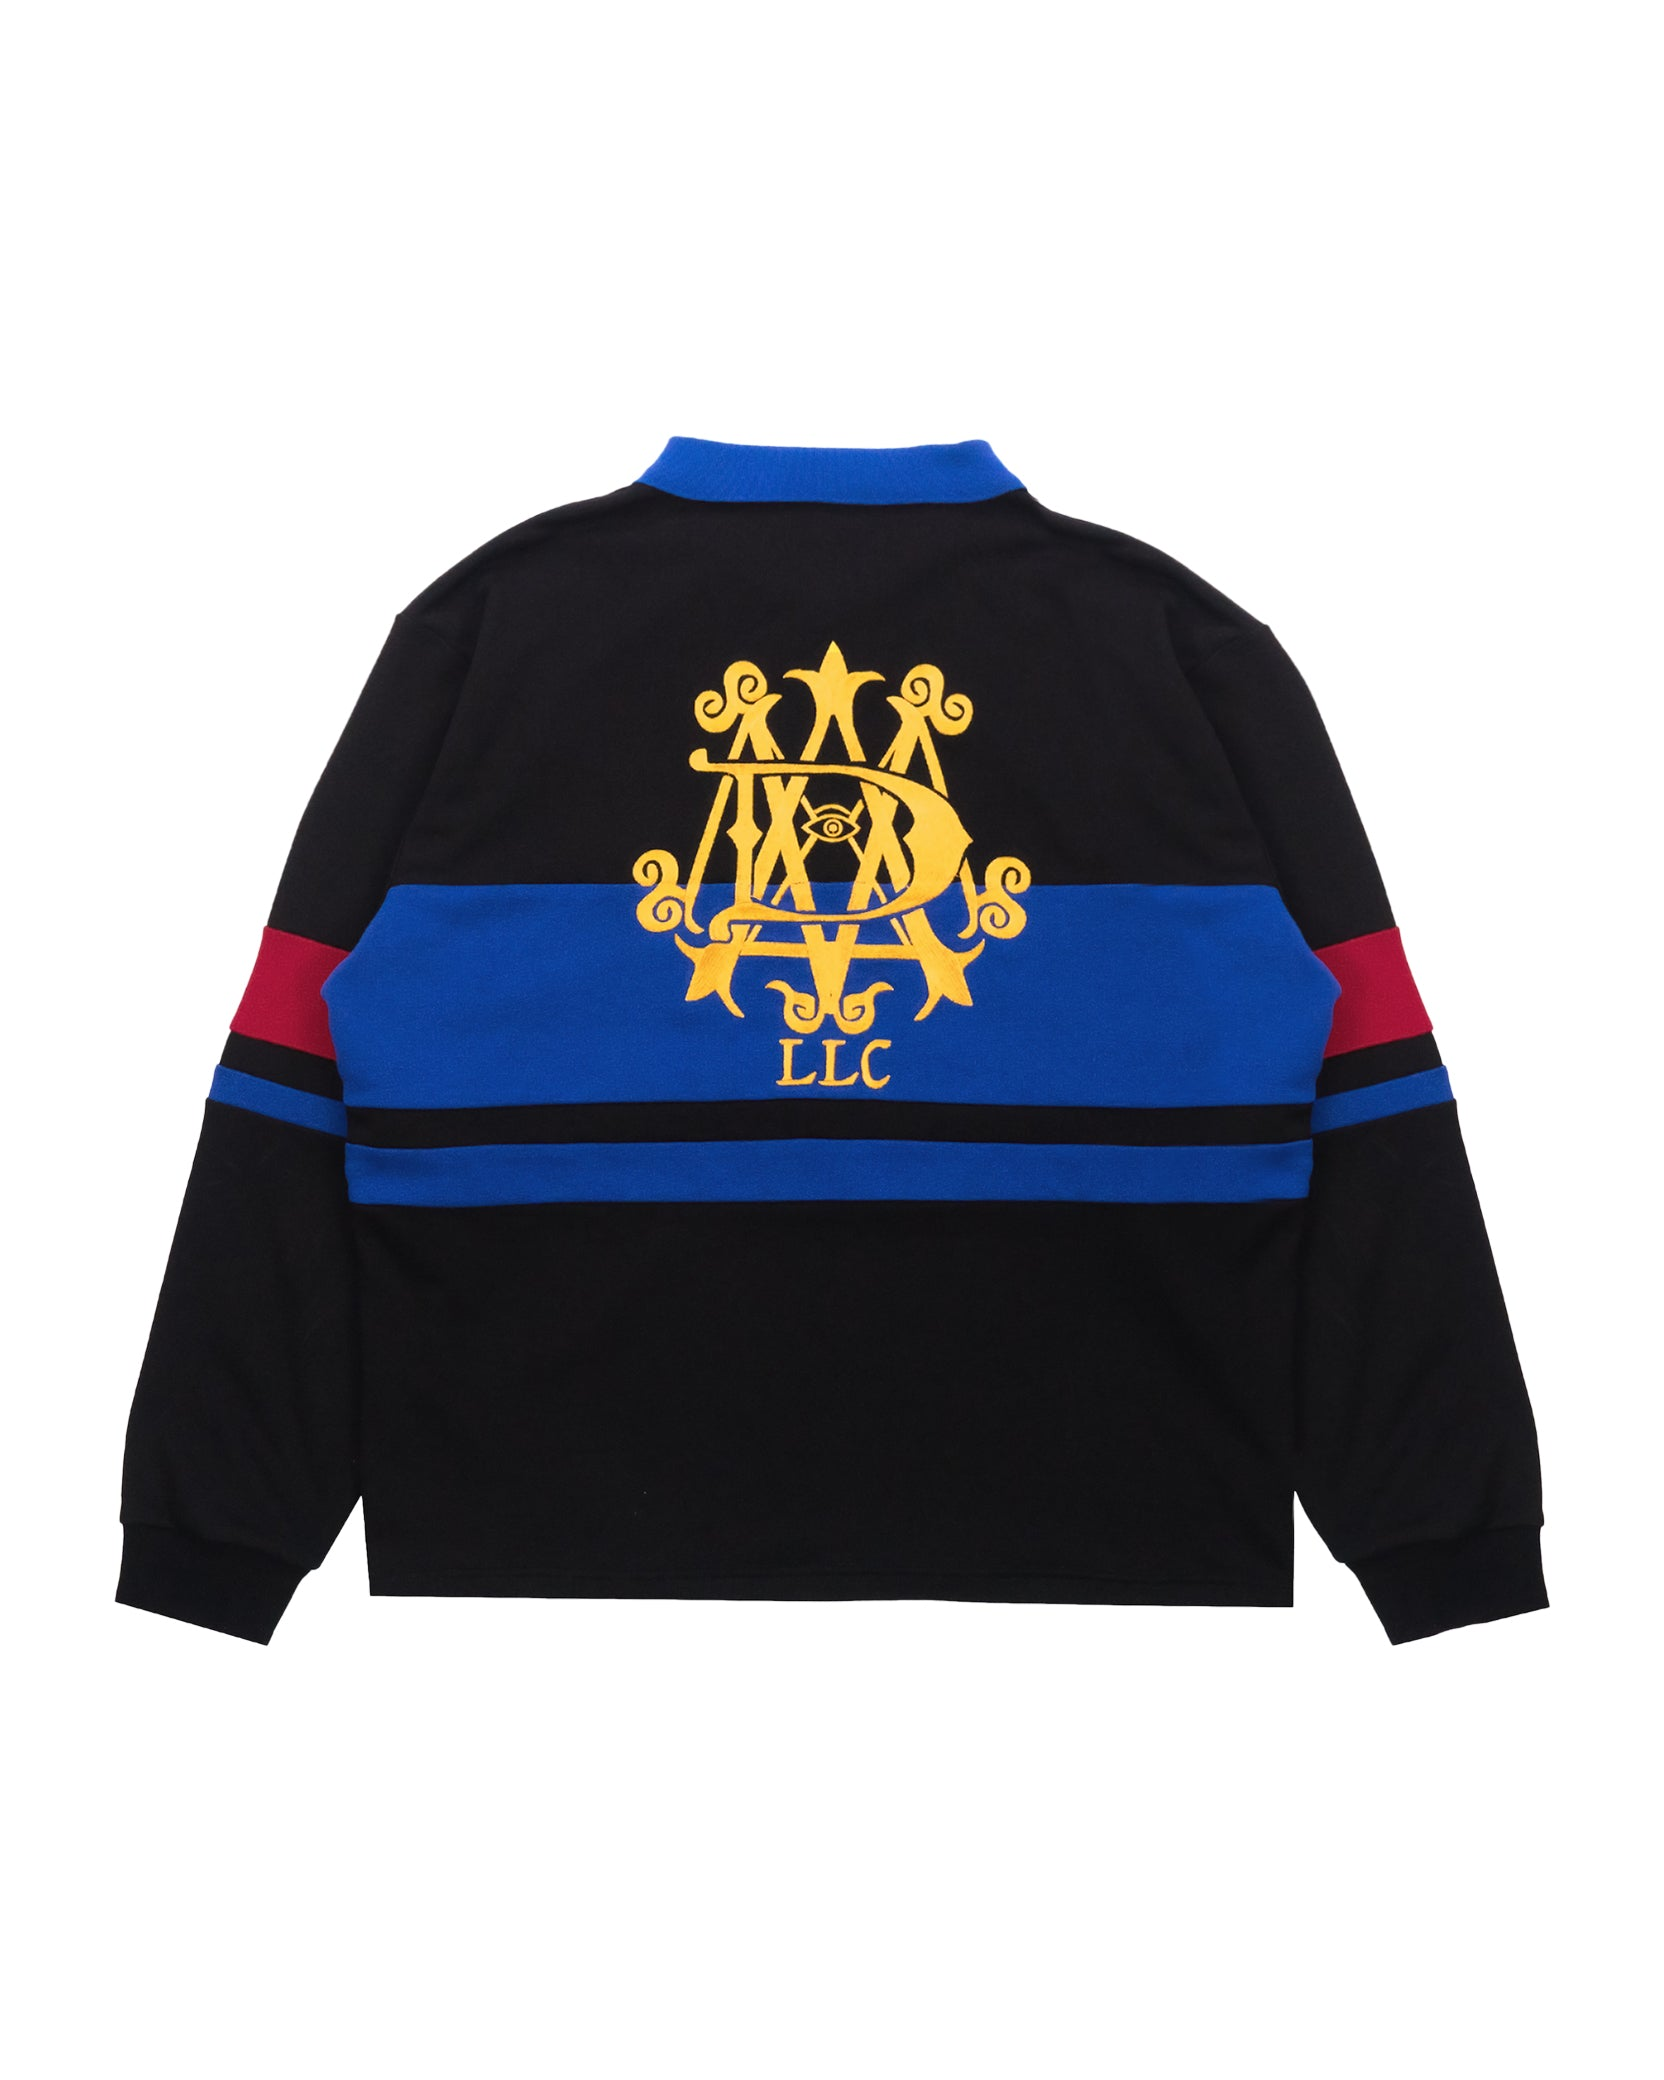 STRIPED RUGBY SHIRT - BLACK / BLUE / RED